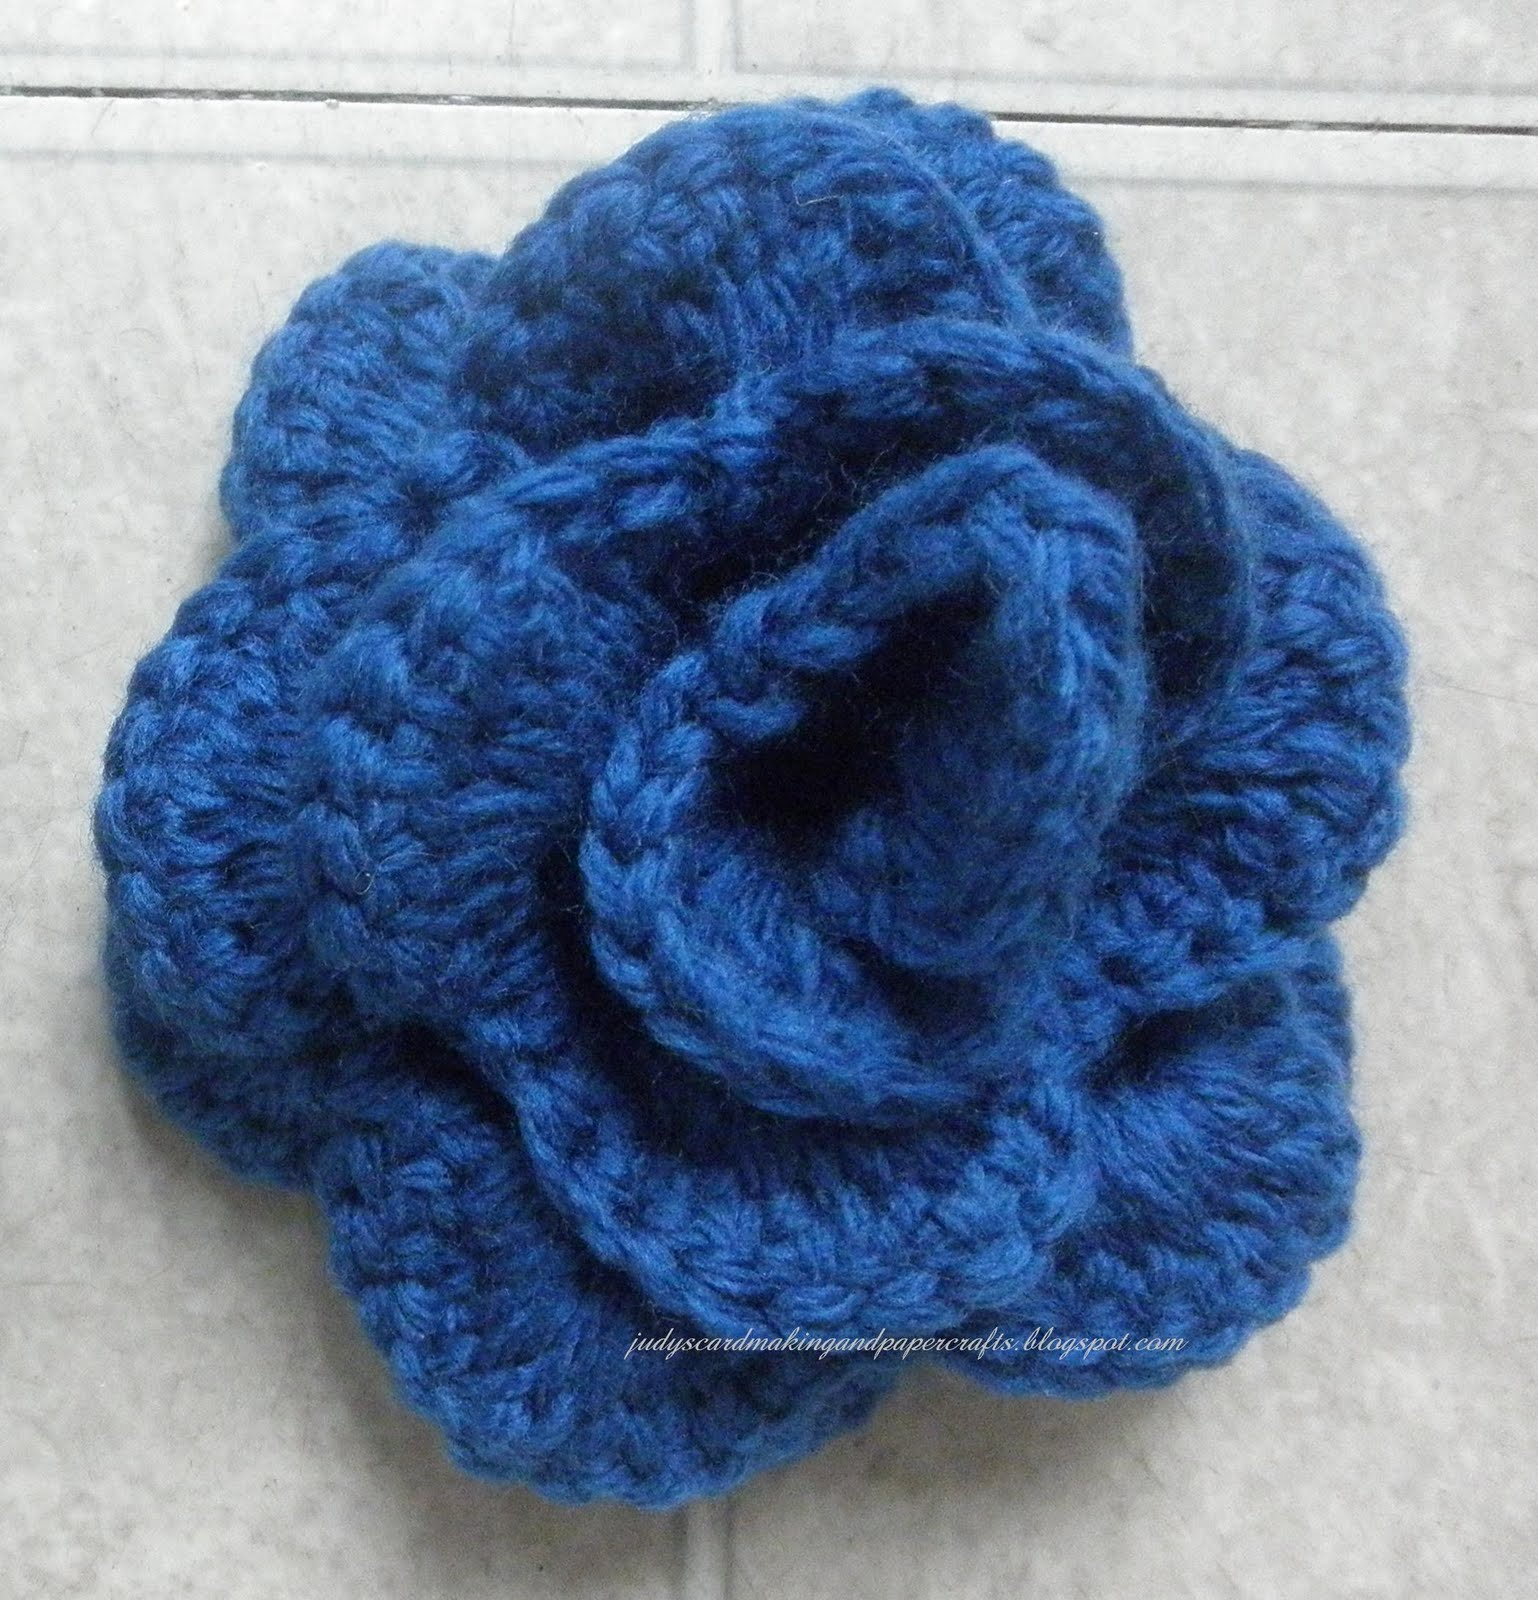 crochet rose pattern this website is my favorite crochet site